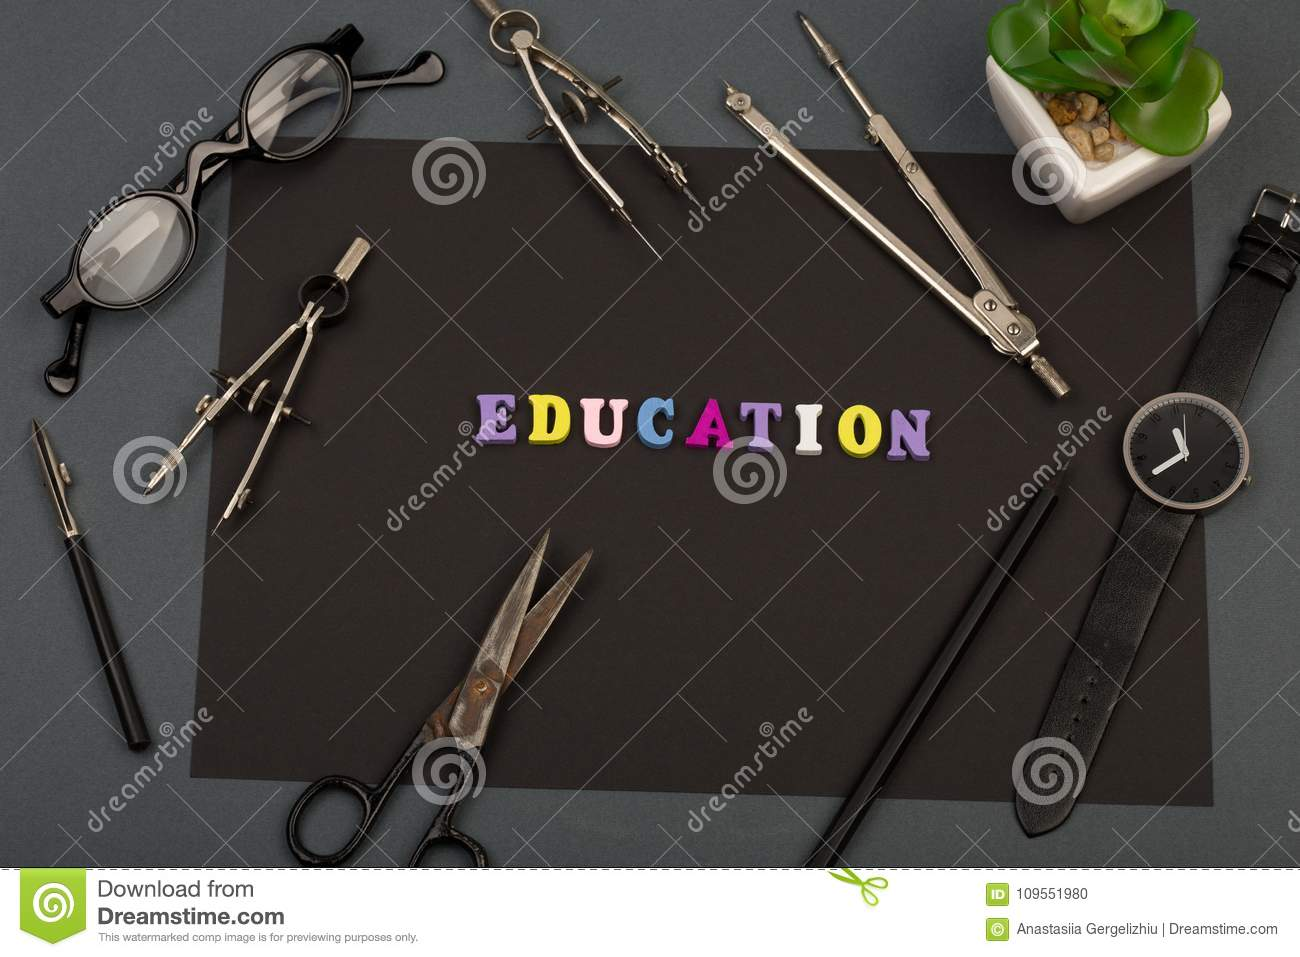 Education of architecture - black paper, text `Education` of wooden letters, engineering tools, eyeglasses, scissors